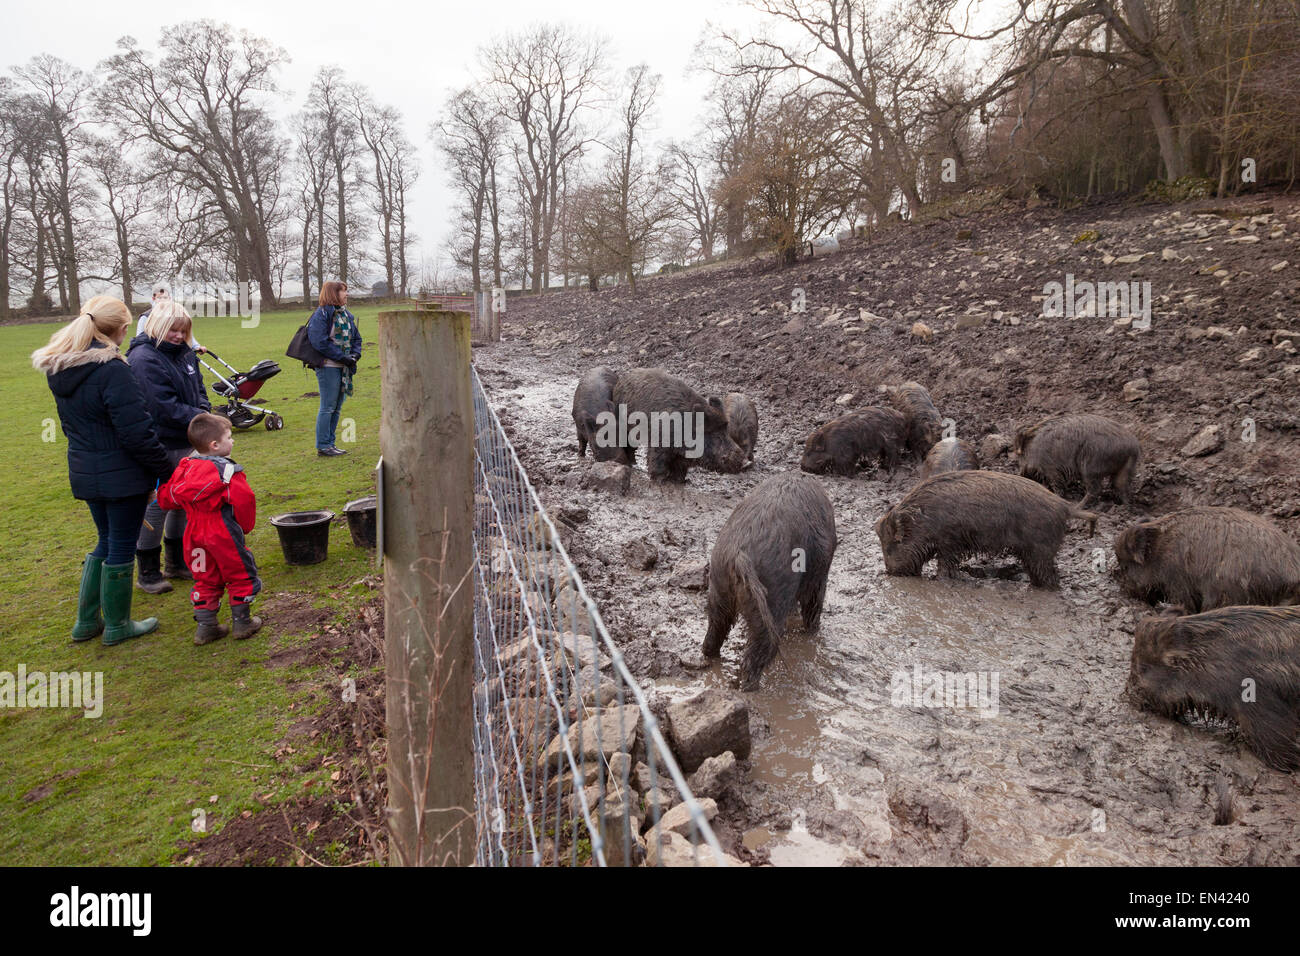 A family looking at group of captive wild boars, Castle Bolton, North Yorkshire Dales UK - Stock Image